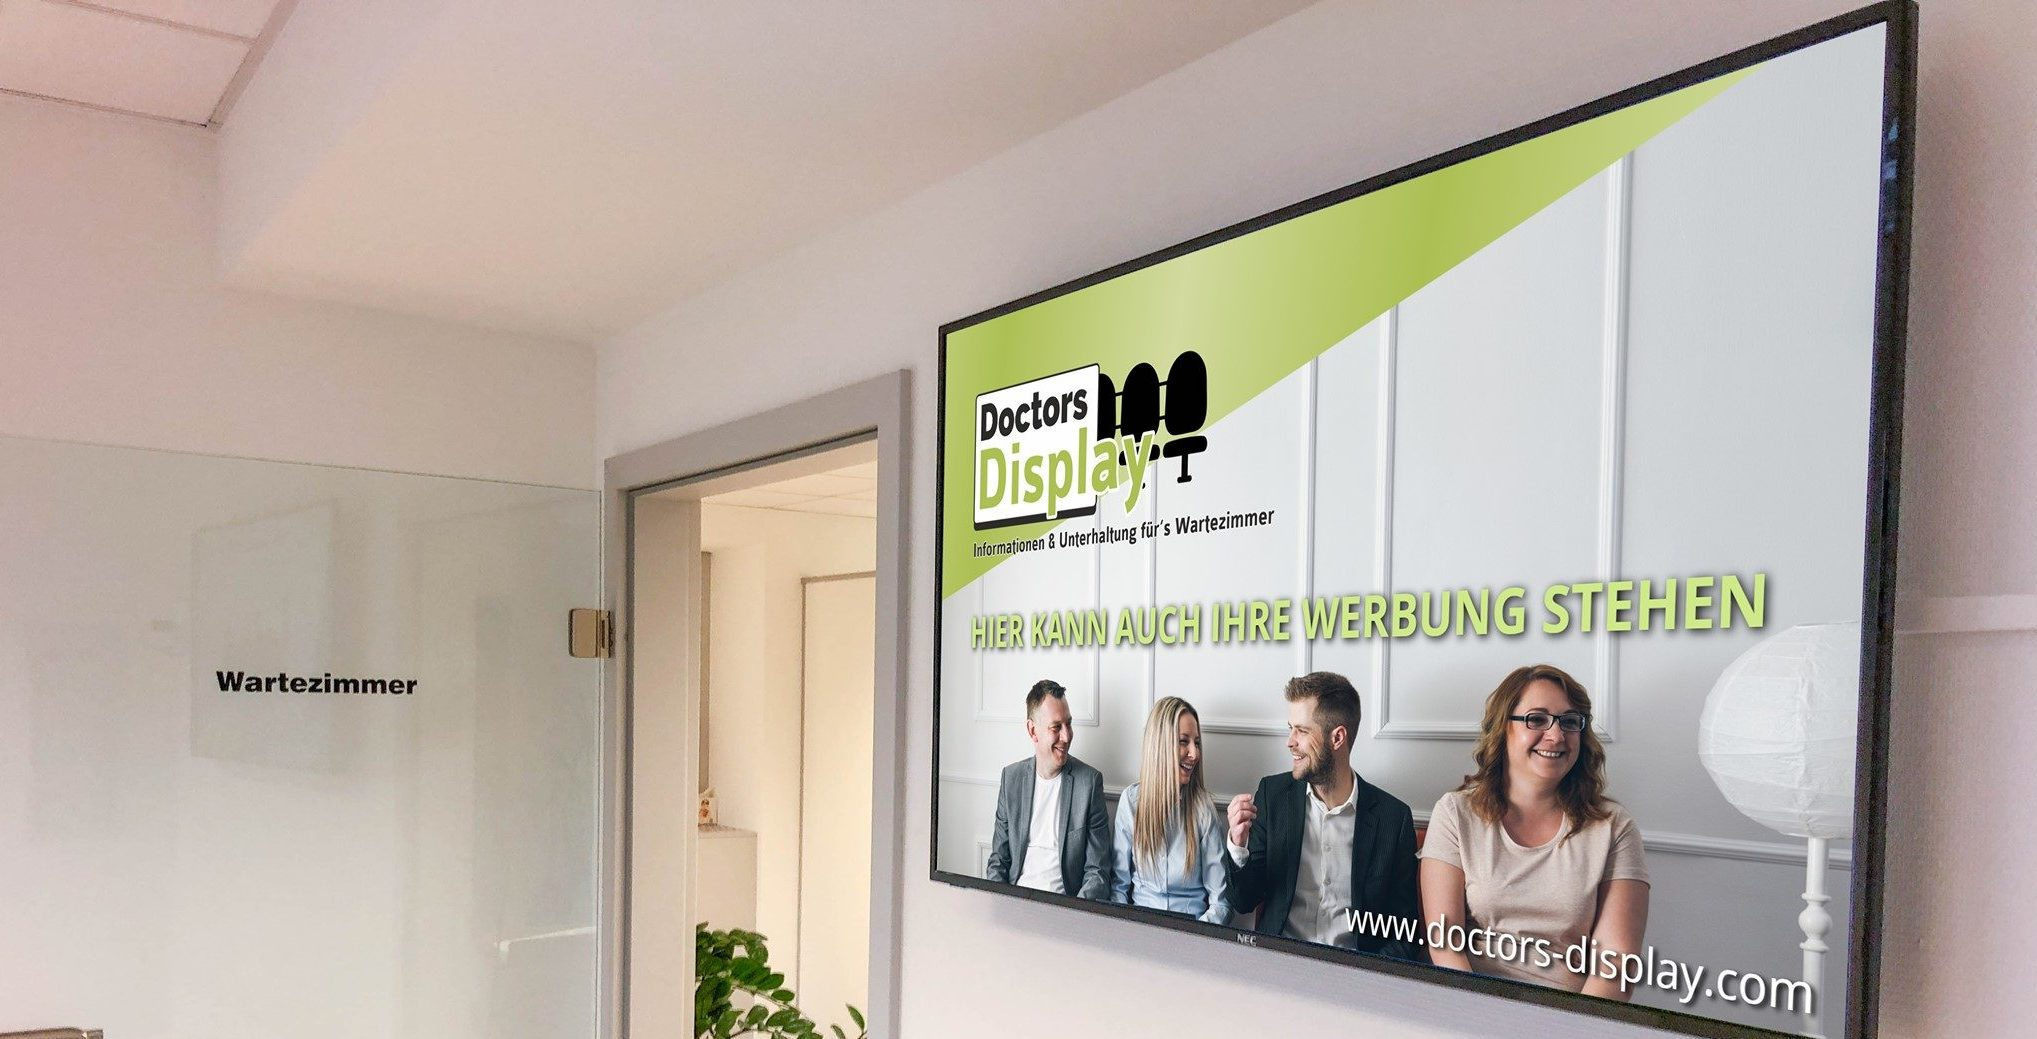 Doctors Display - Wartezimmer - Display - Werbung